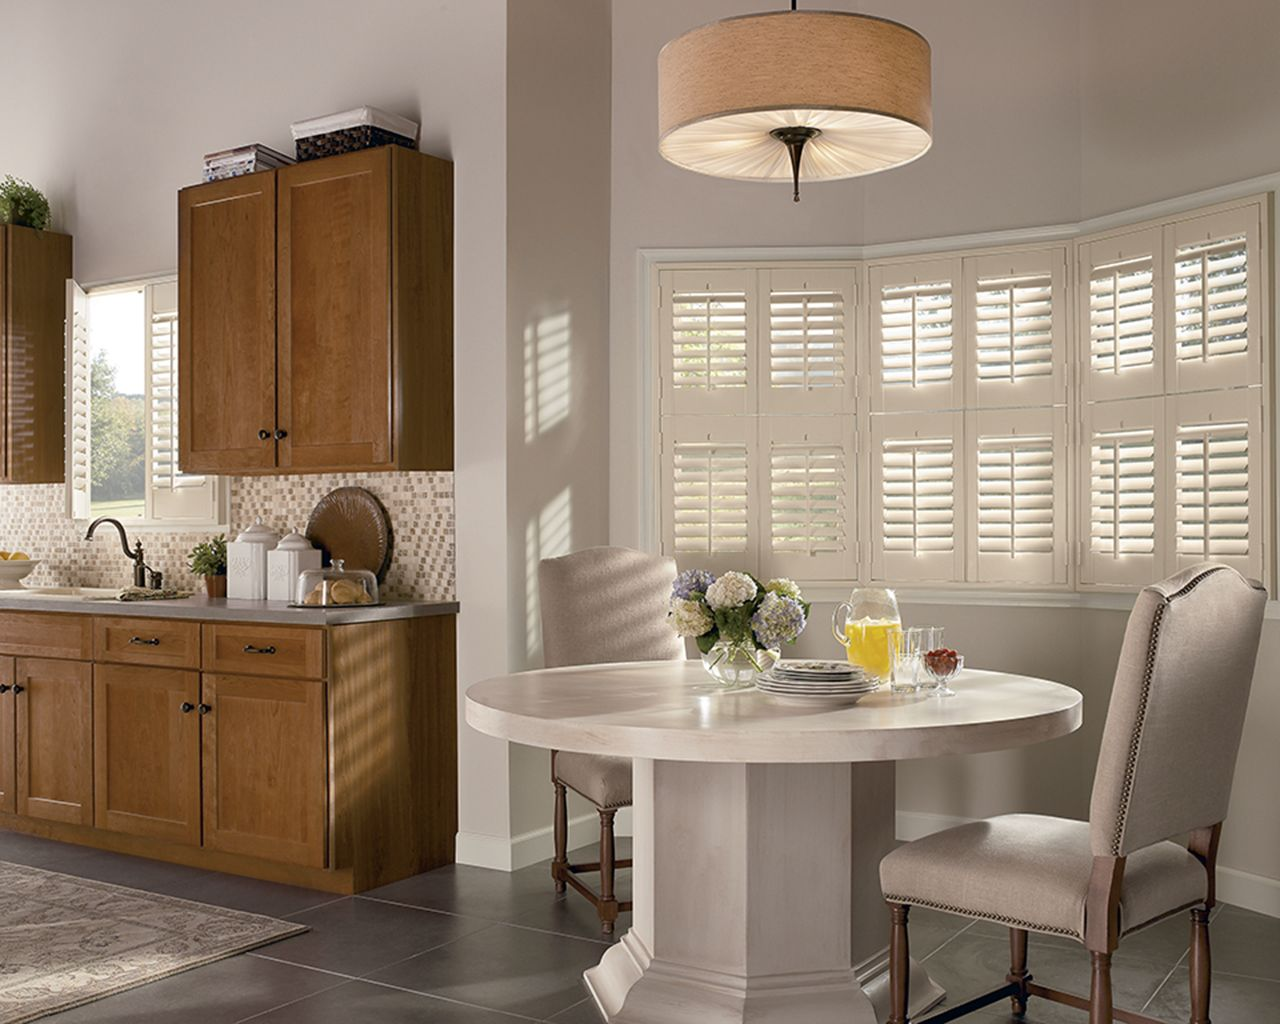 Timber shutters luxaflex newstyle timber shutters provide the